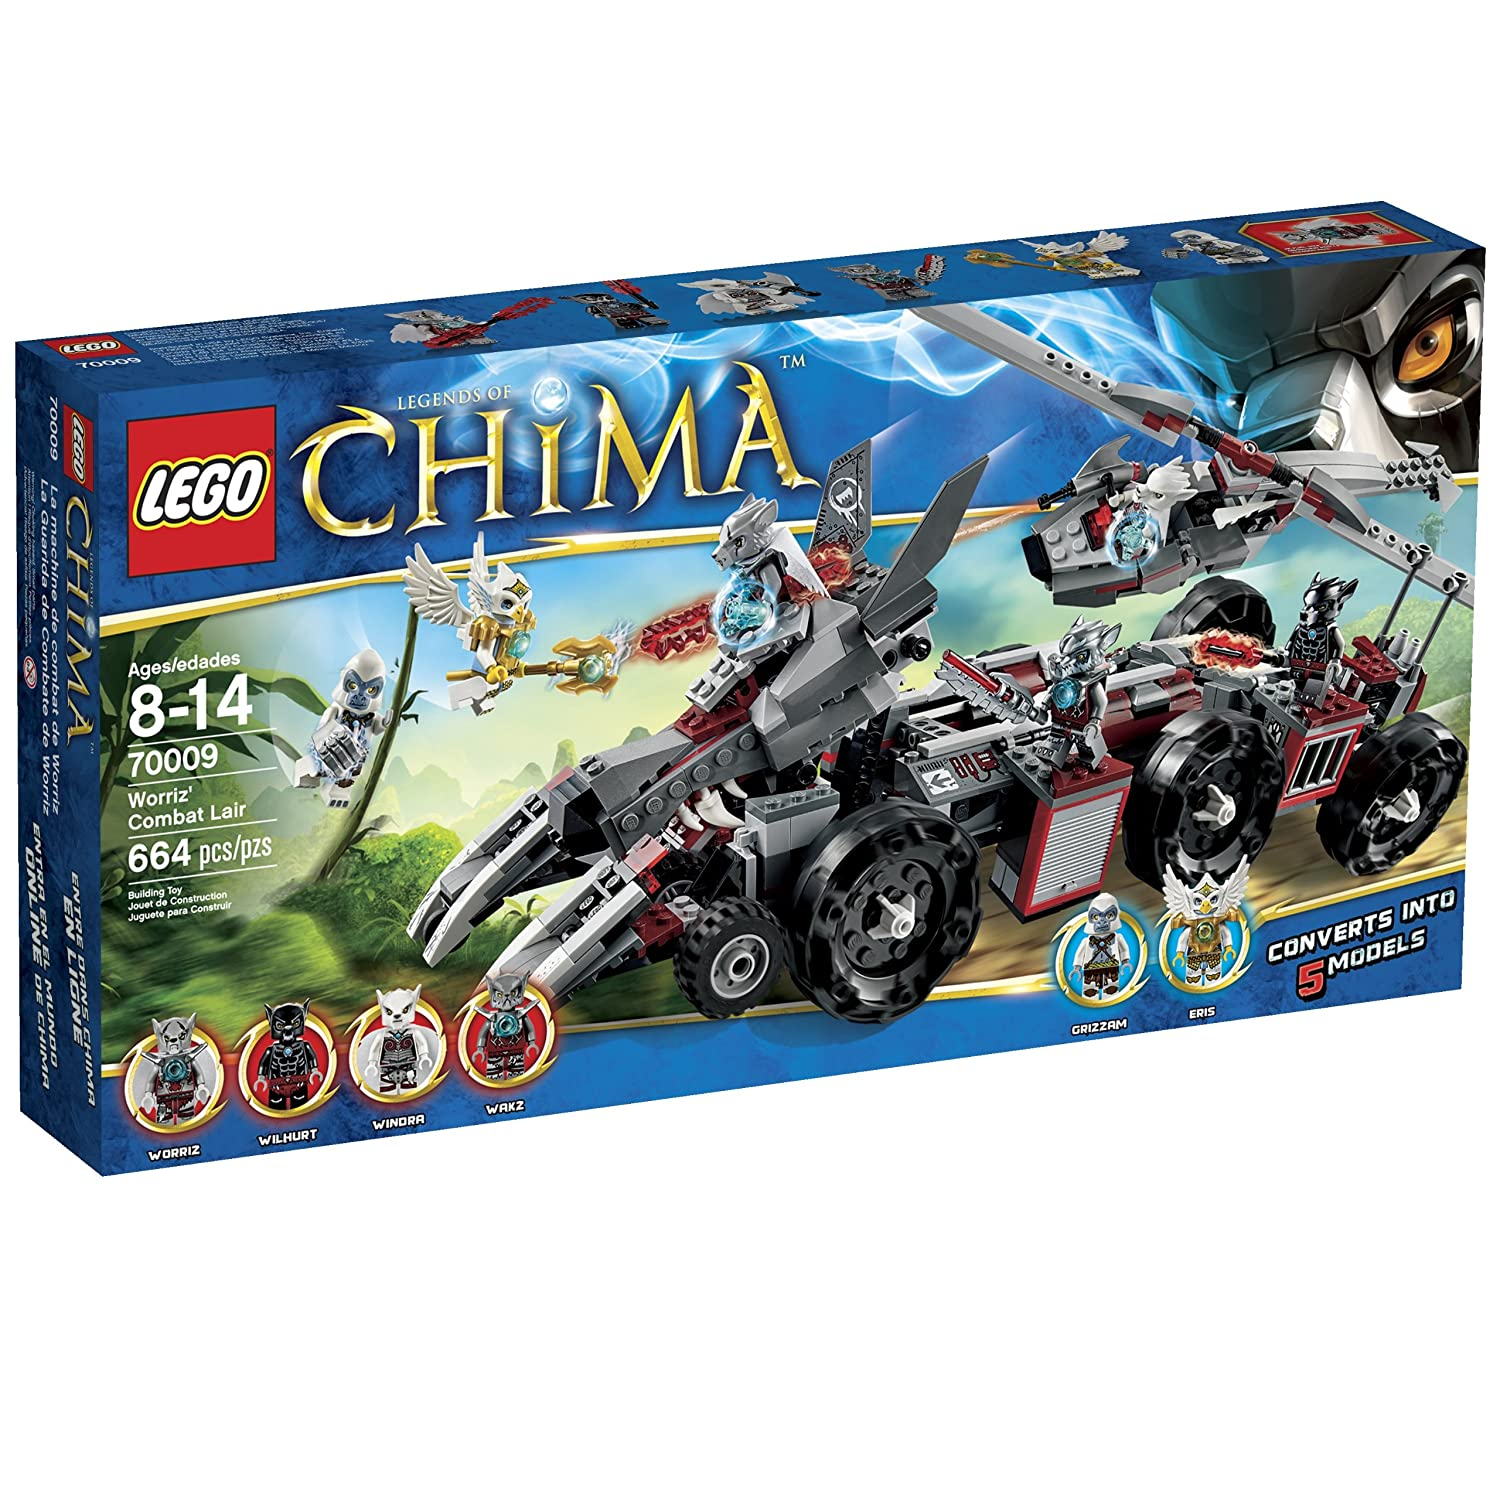 Top 9 Best LEGO Chima Sets Reviews in 2020 8